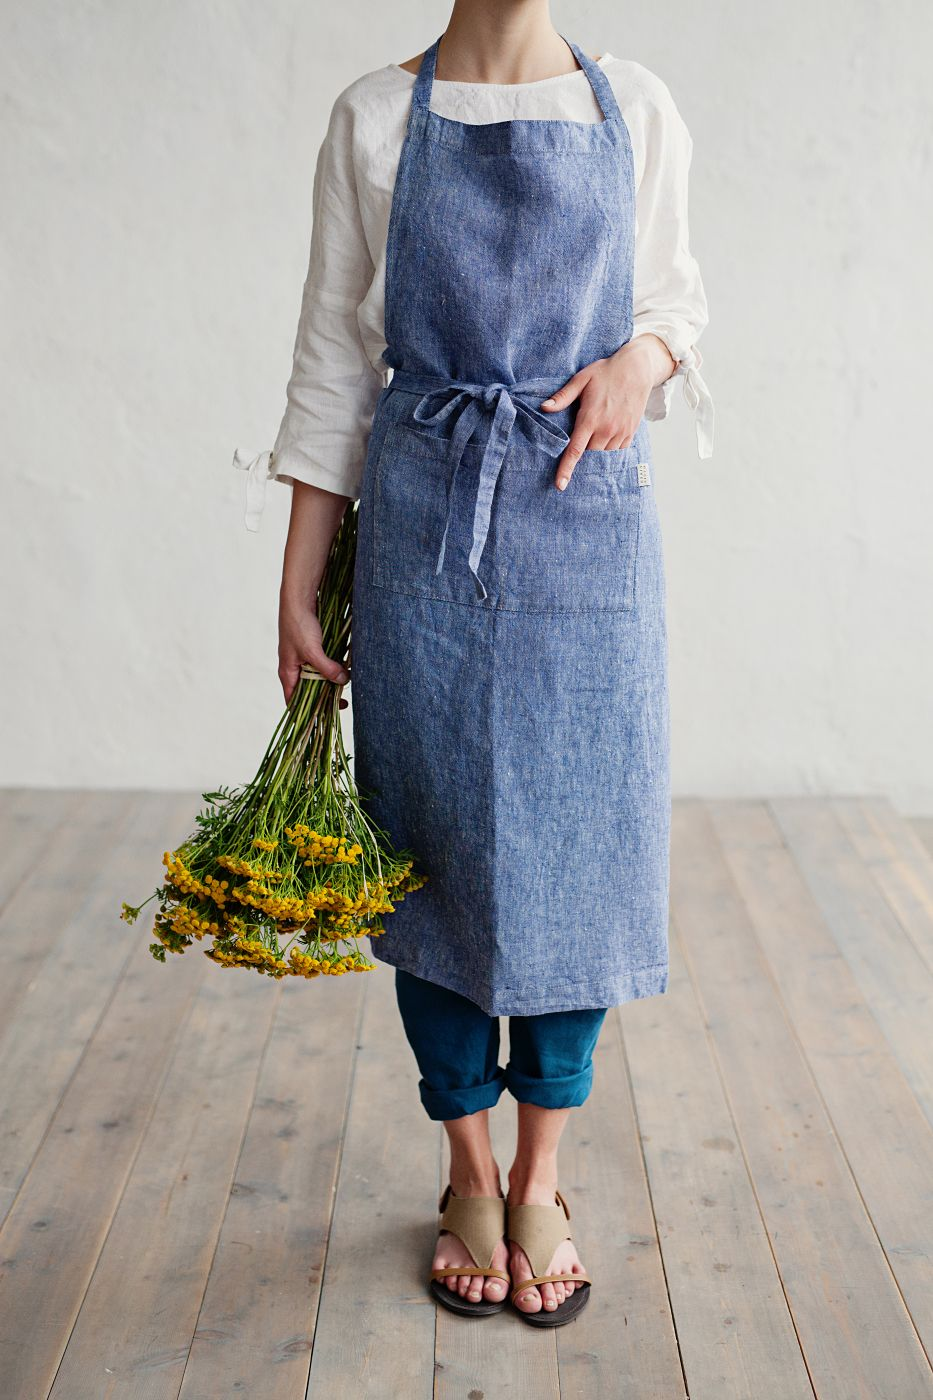 Lightweight stone washed kitchen apron for creative experiments in ...